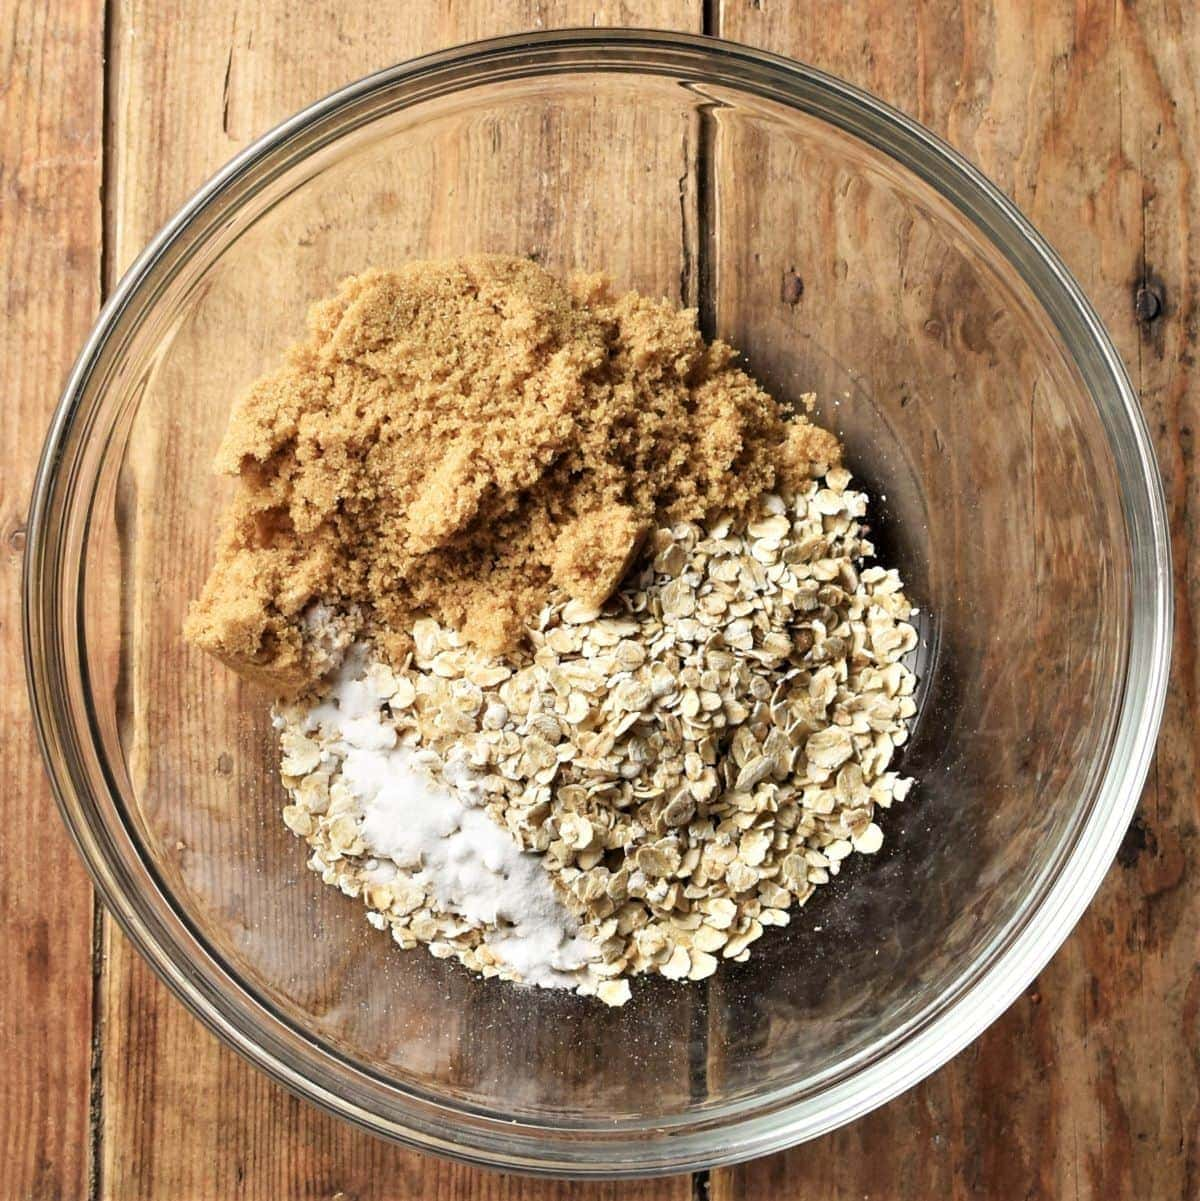 Oats and brown sugar in mixing bowl.